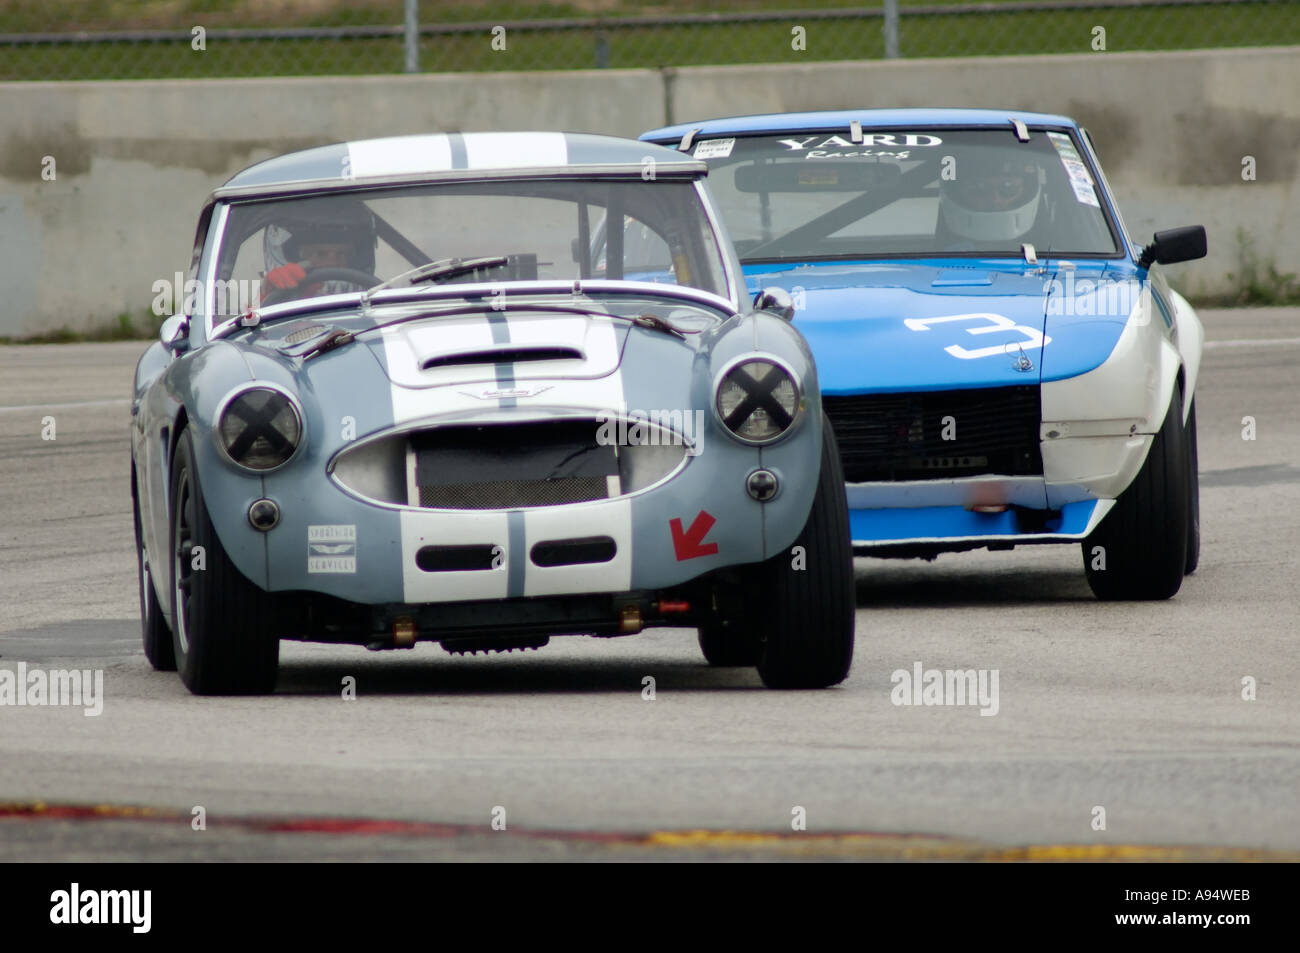 Bob dillon races his 1957 austin healey 100 6 followed by richard bob dillon races his 1957 austin healey 100 6 followed by richard blaha in his 1970 datsun 240z at the vintage gt challenge 2005 vanachro Gallery